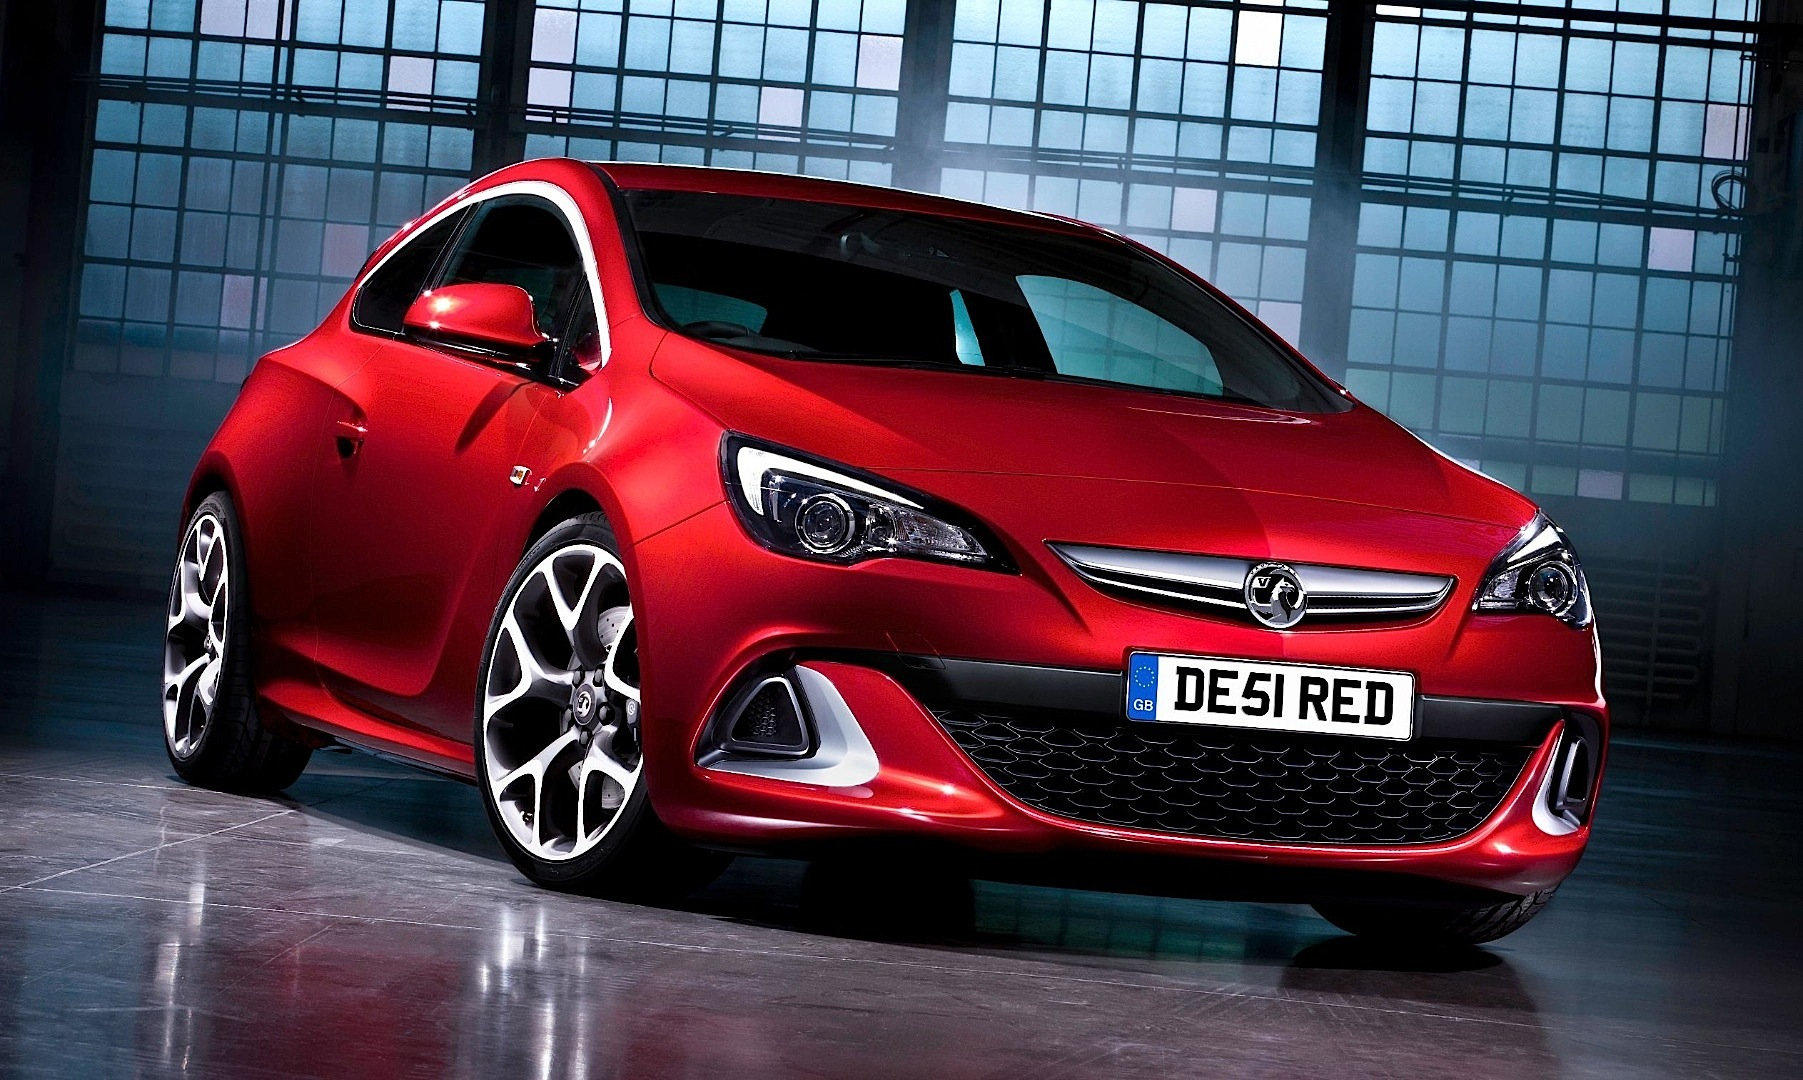 2011 Vauxhall Astra VXR Official Info and Photos ...